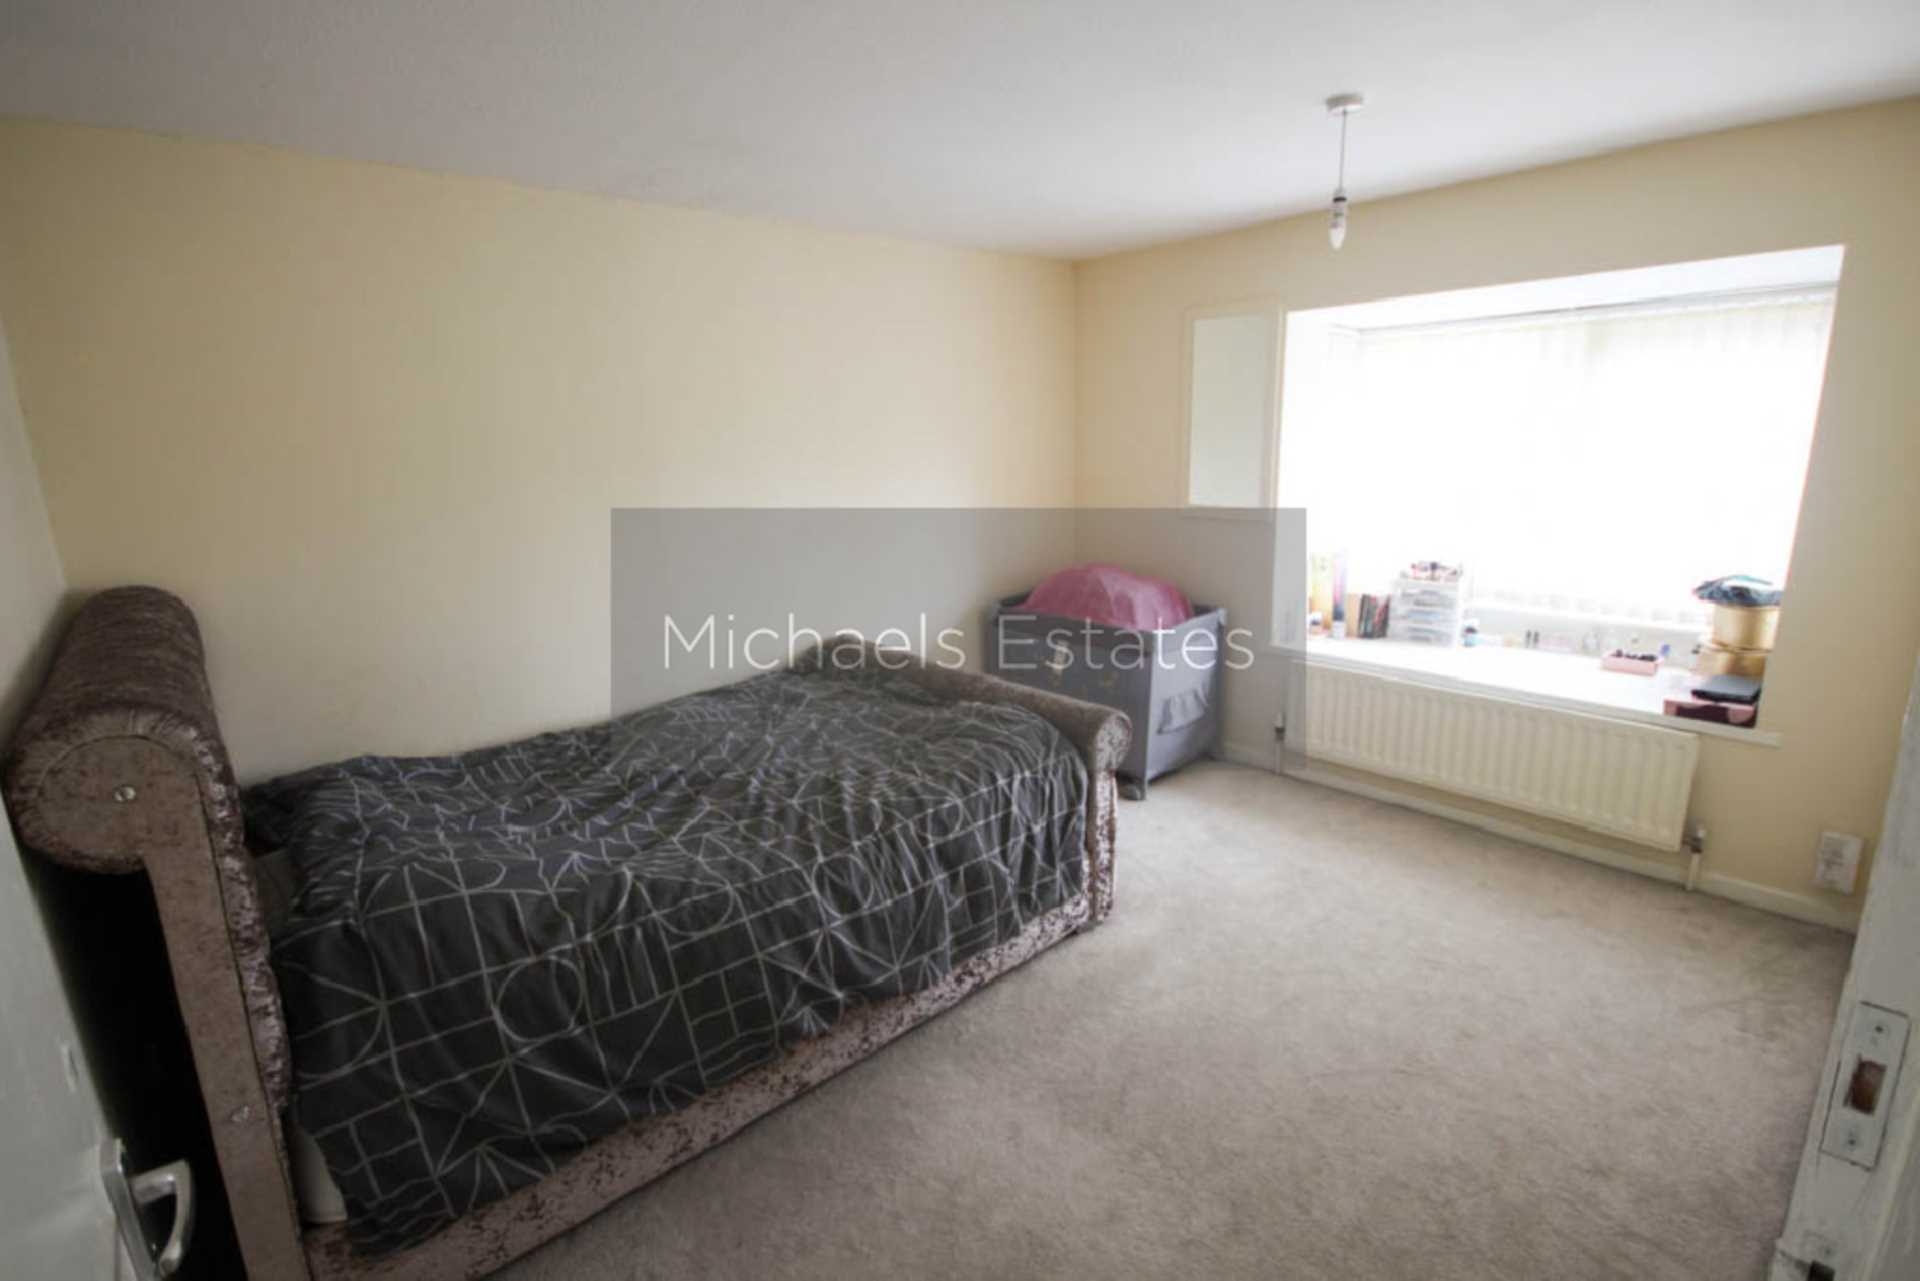 Bonville Place, Leicester, Image 7